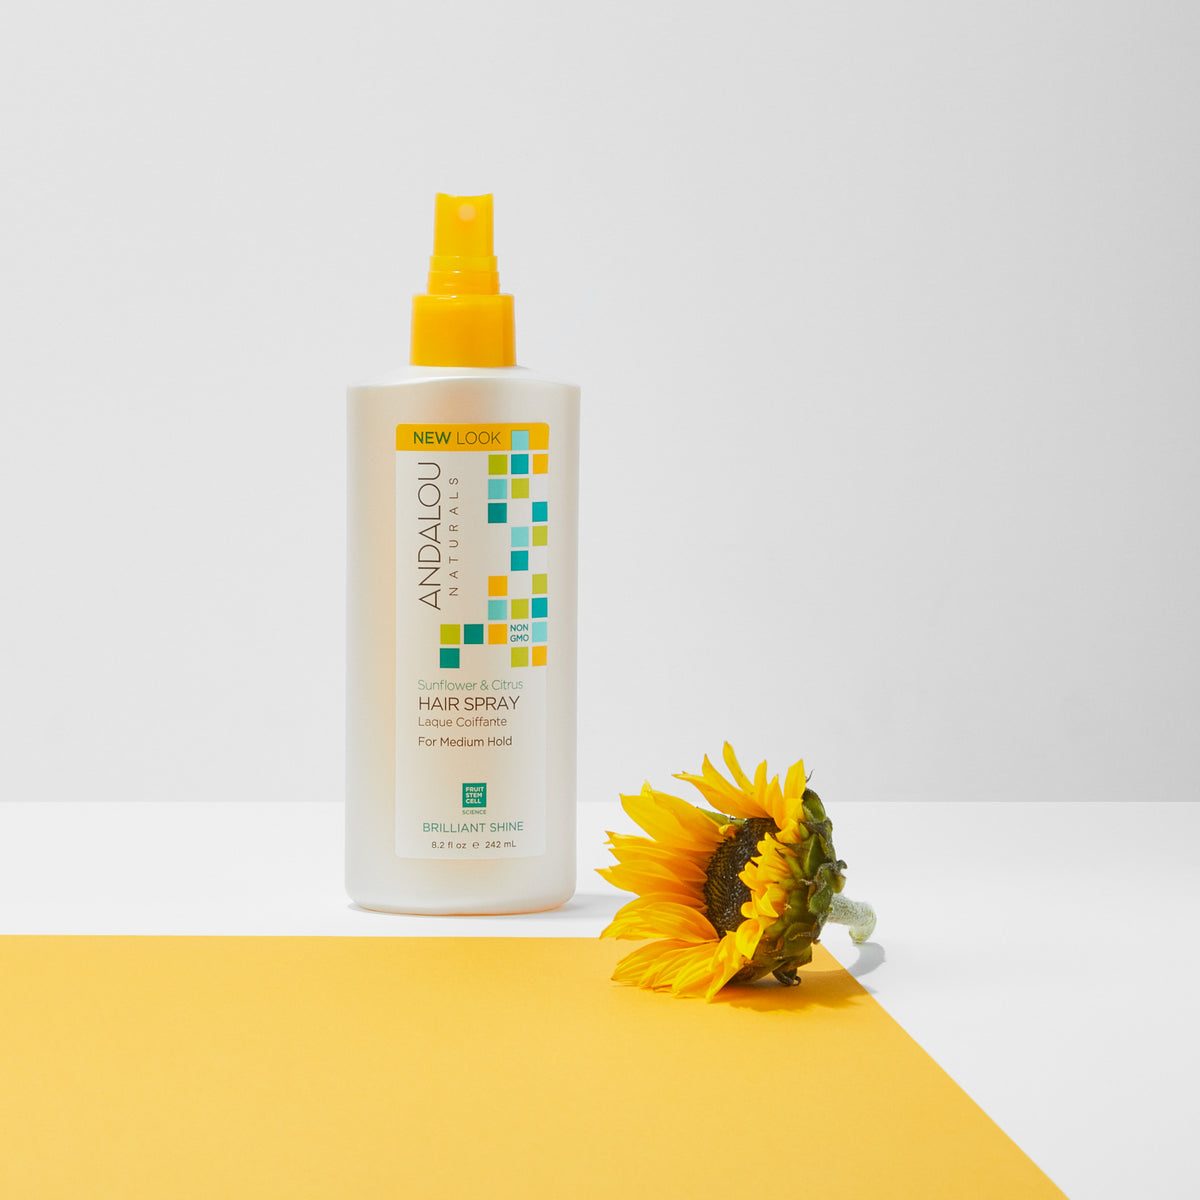 Sunflower & Citrus Brilliant Shine Hair Spray